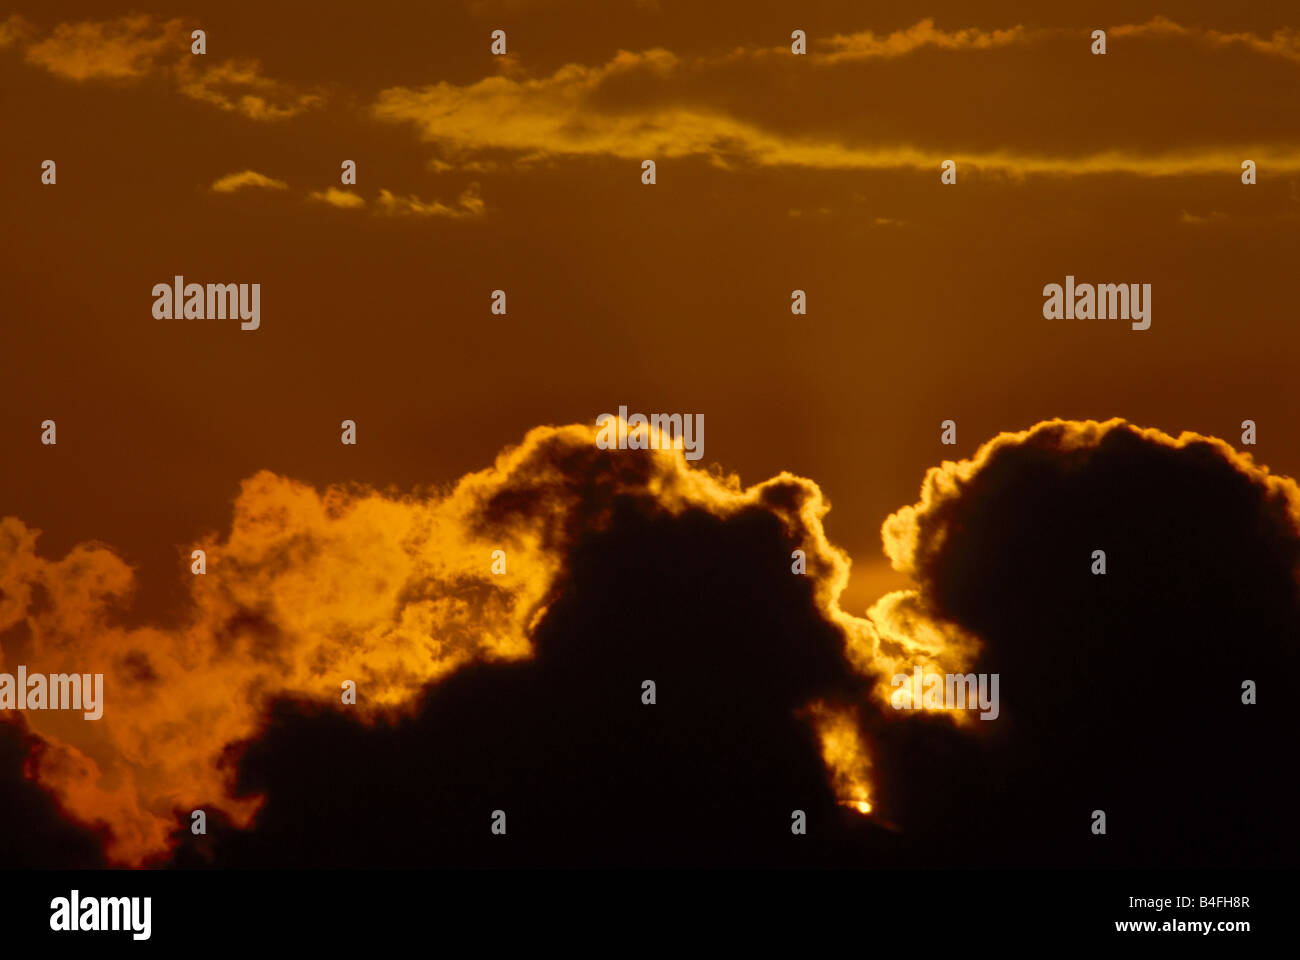 CLOUDS IN THE EVENING SKY - Stock Image